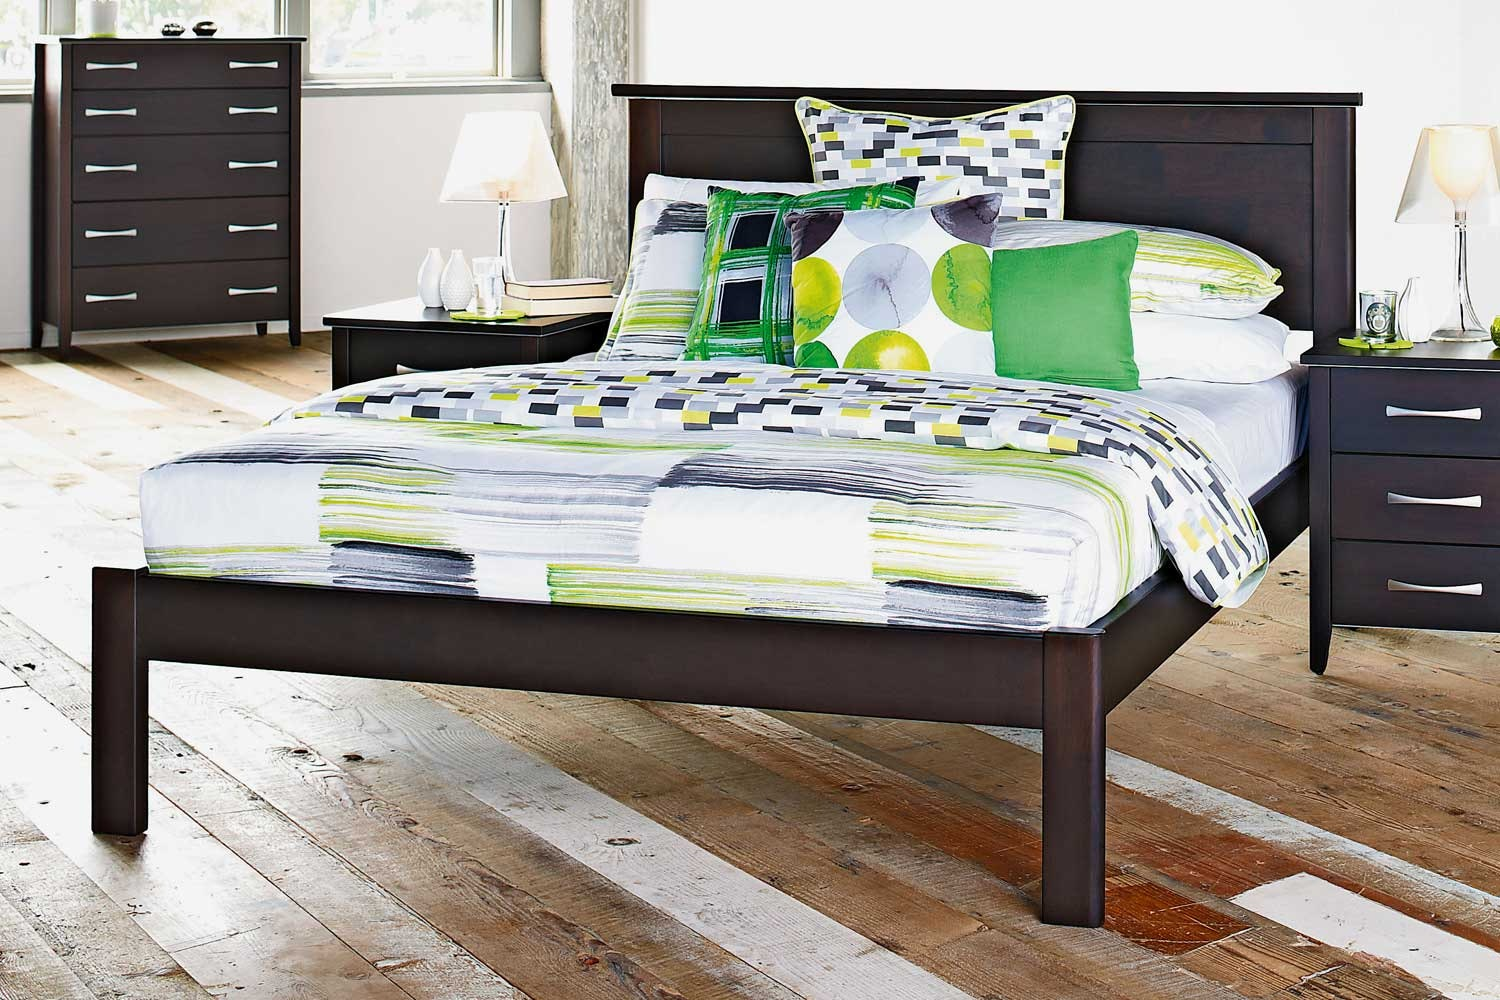 Bedroom Furniture Chicago. Chicago King Single Bed Frame Bedroom Furniture D